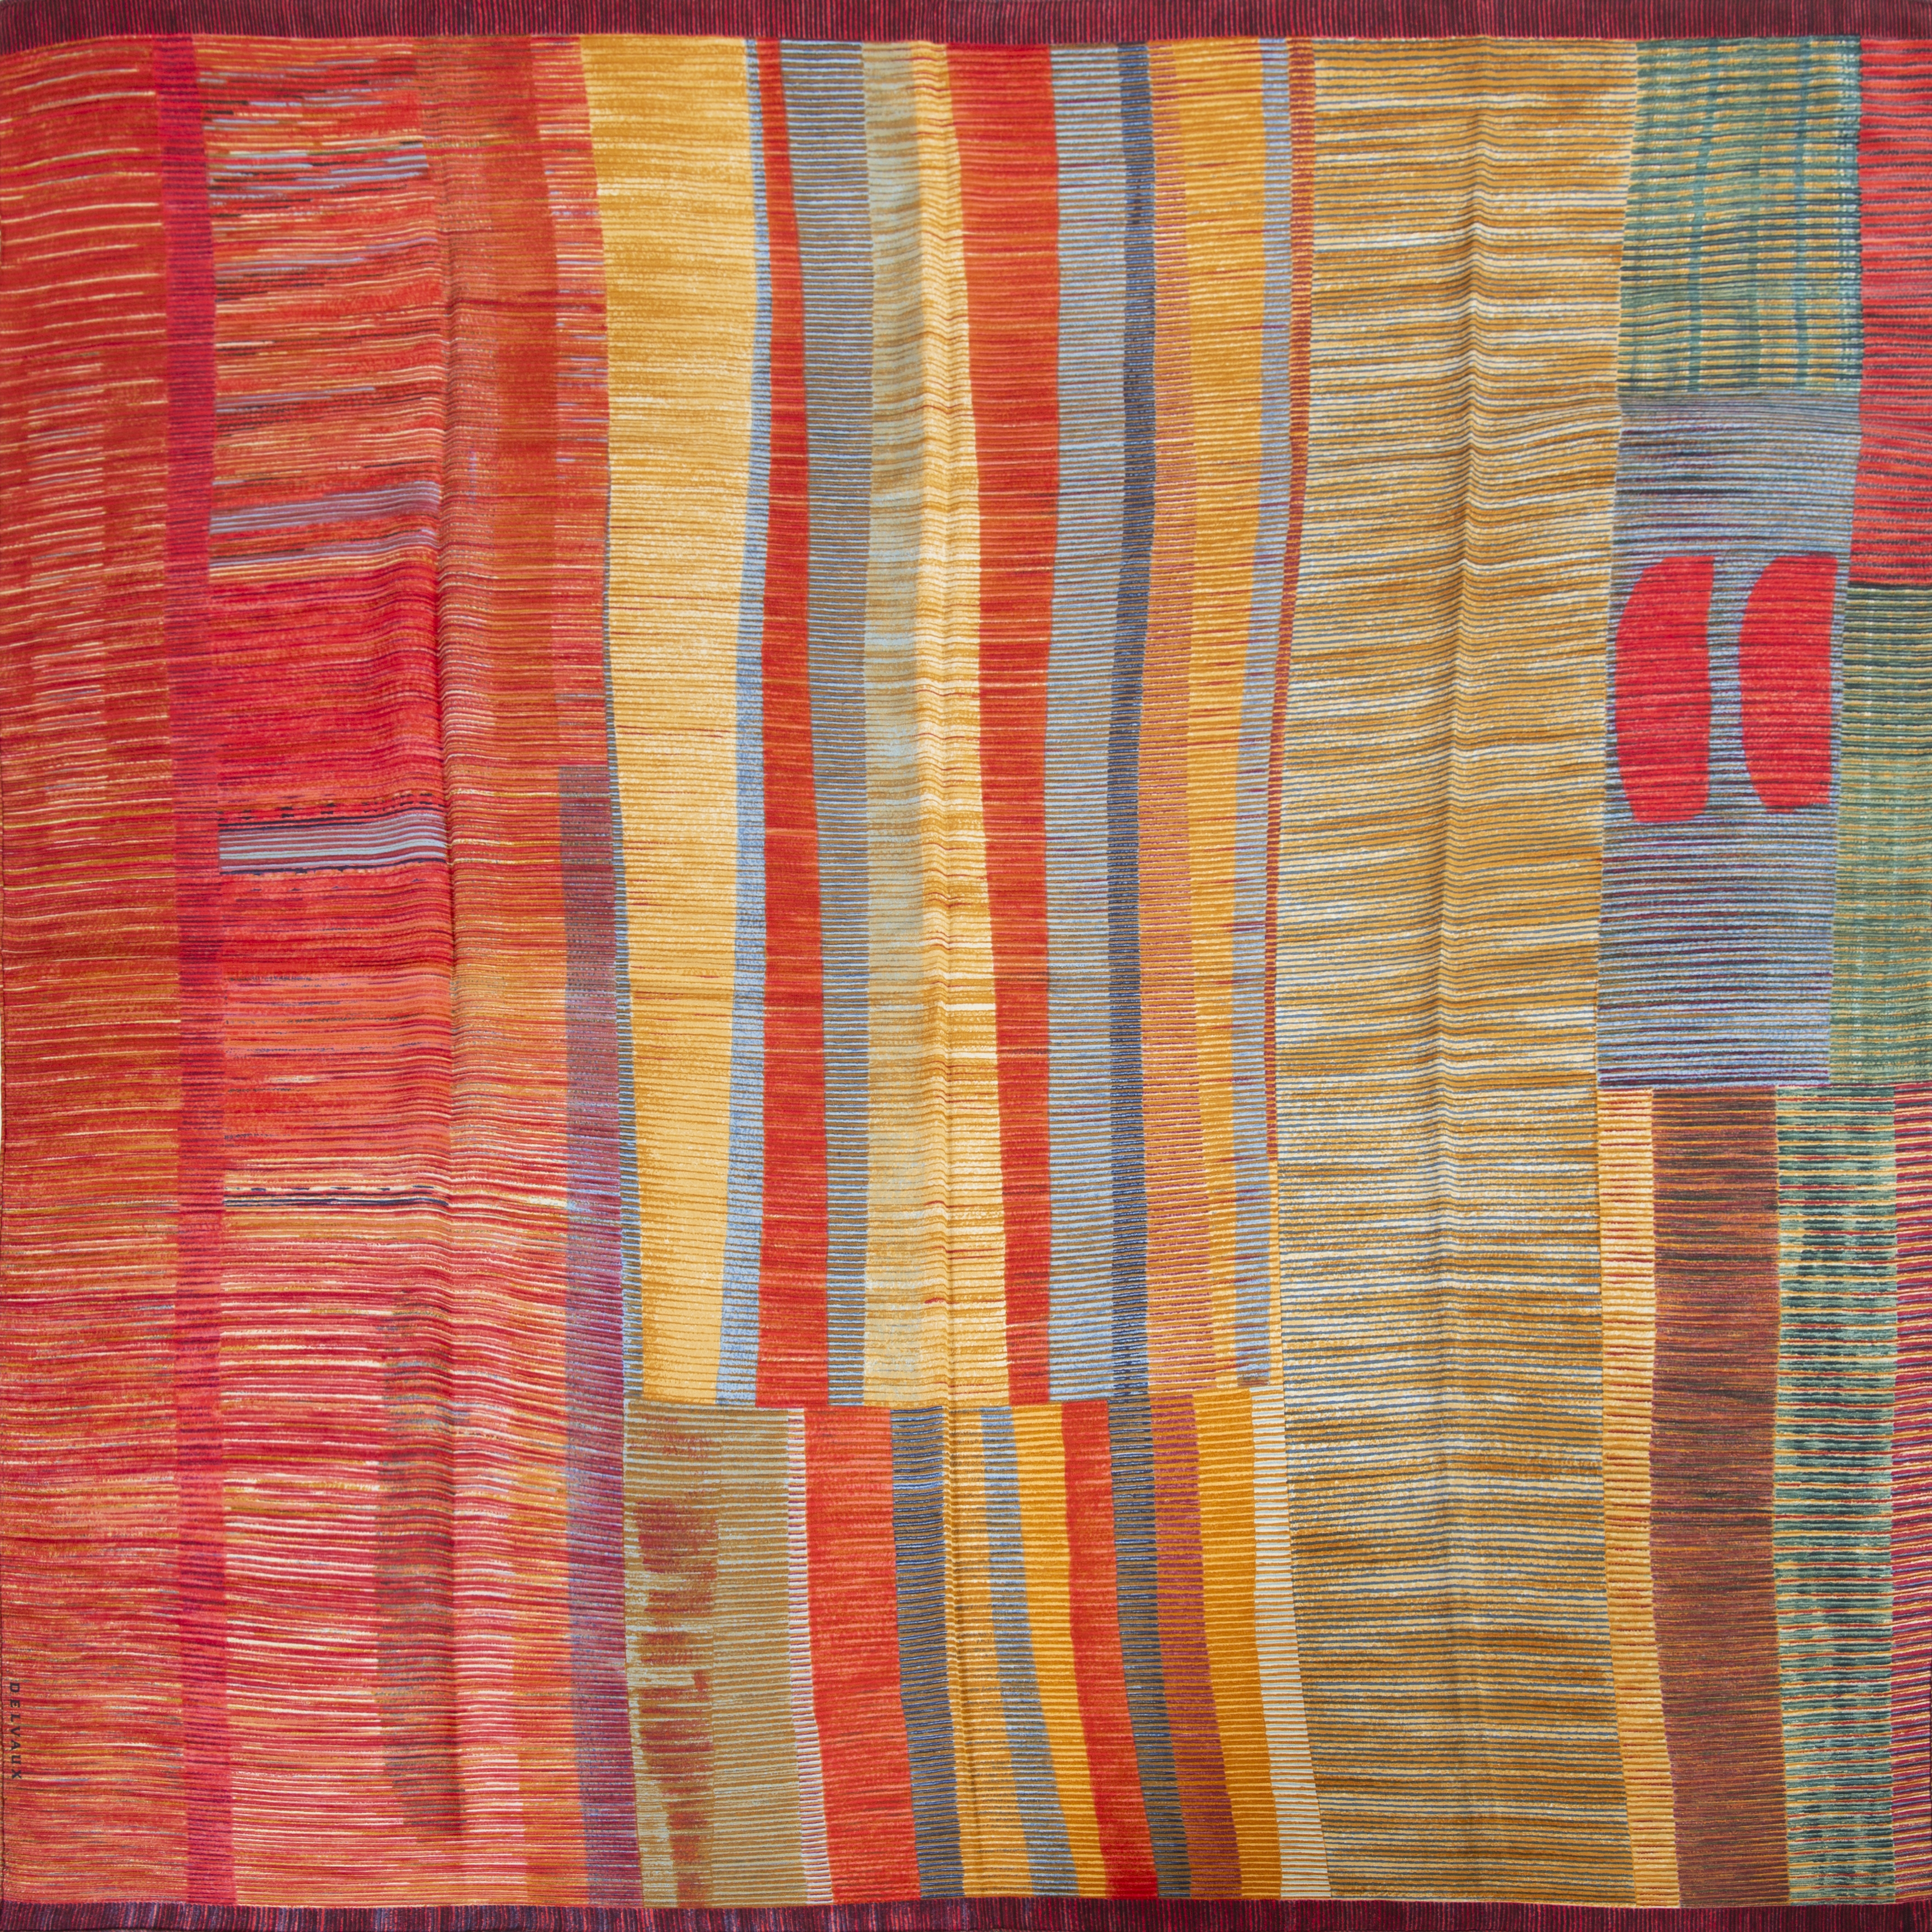 delvaux multicolor striped silk scarf now for sale at labellov vintage fashion webshop